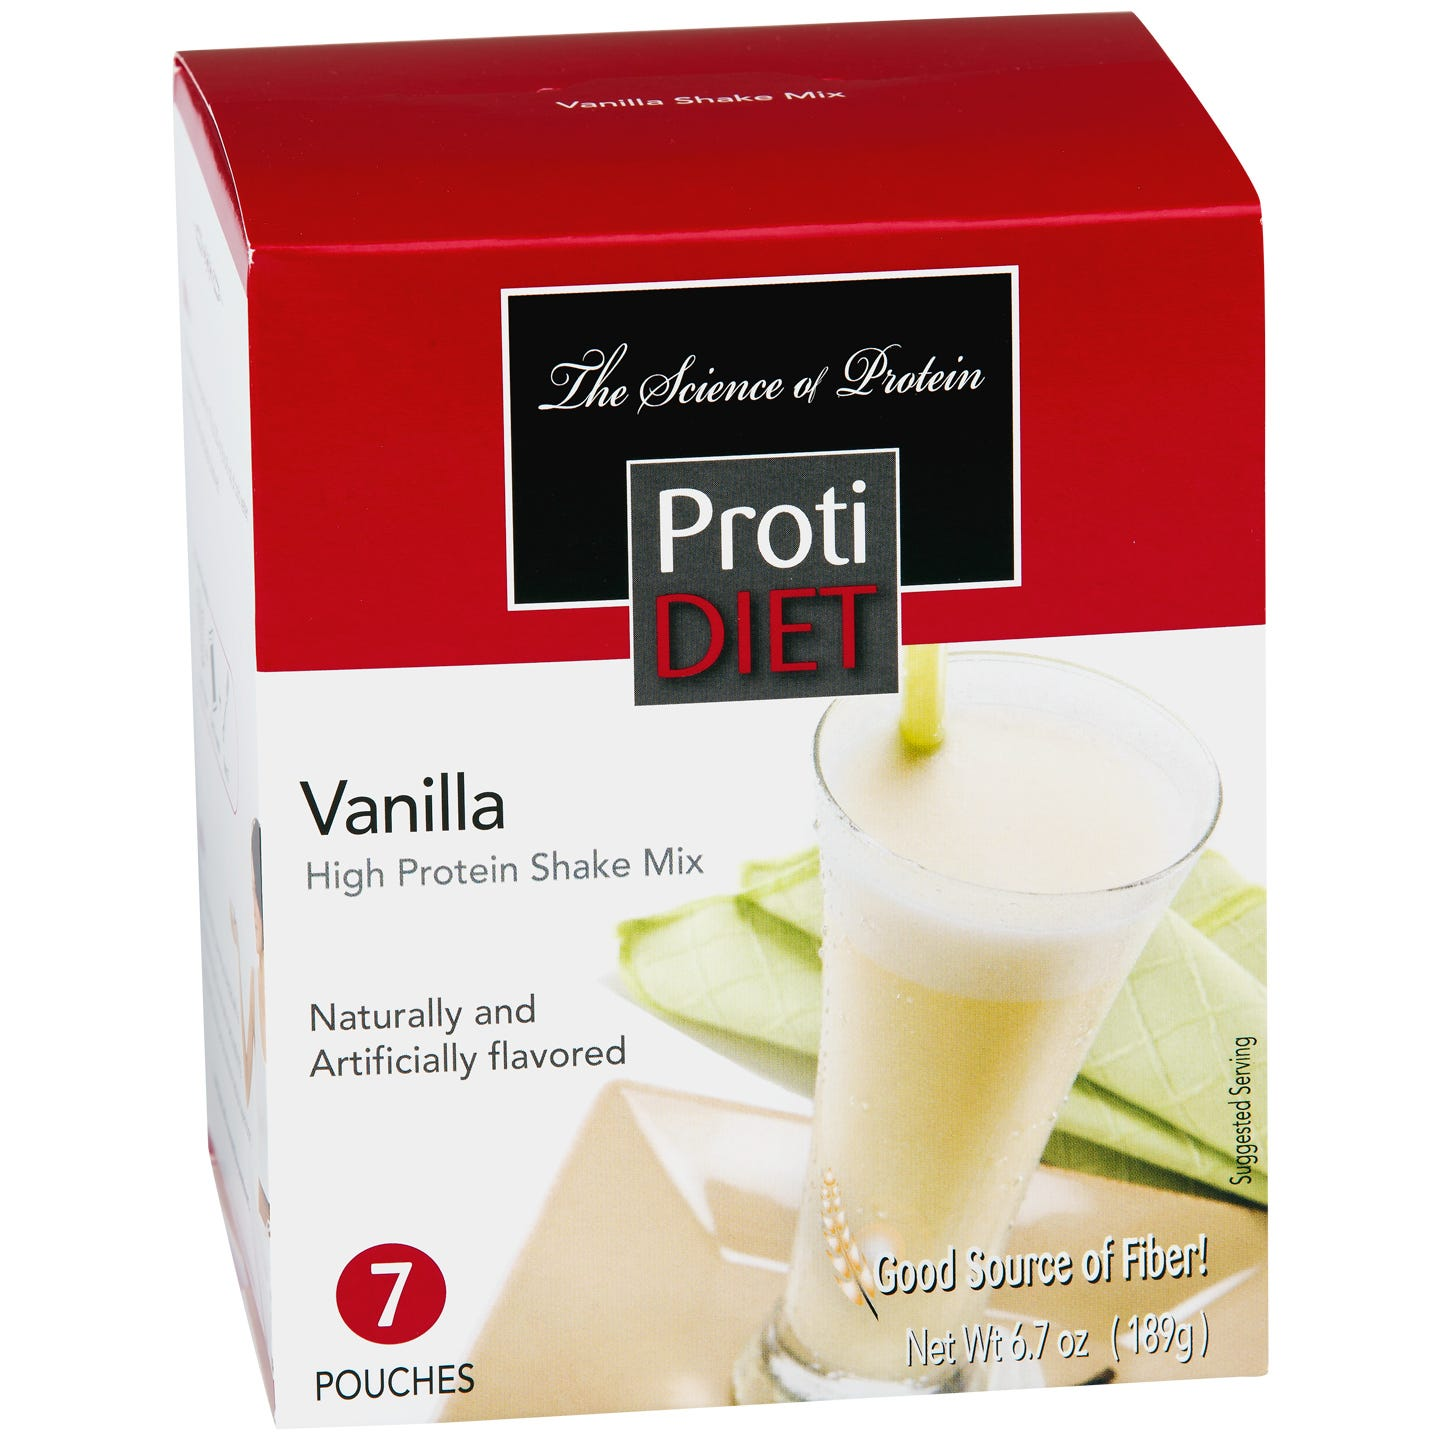 High Protein Shake Mix Vanilla (7 ct) - ProtiDiet - Rapid Diet Weight Loss Products Shop